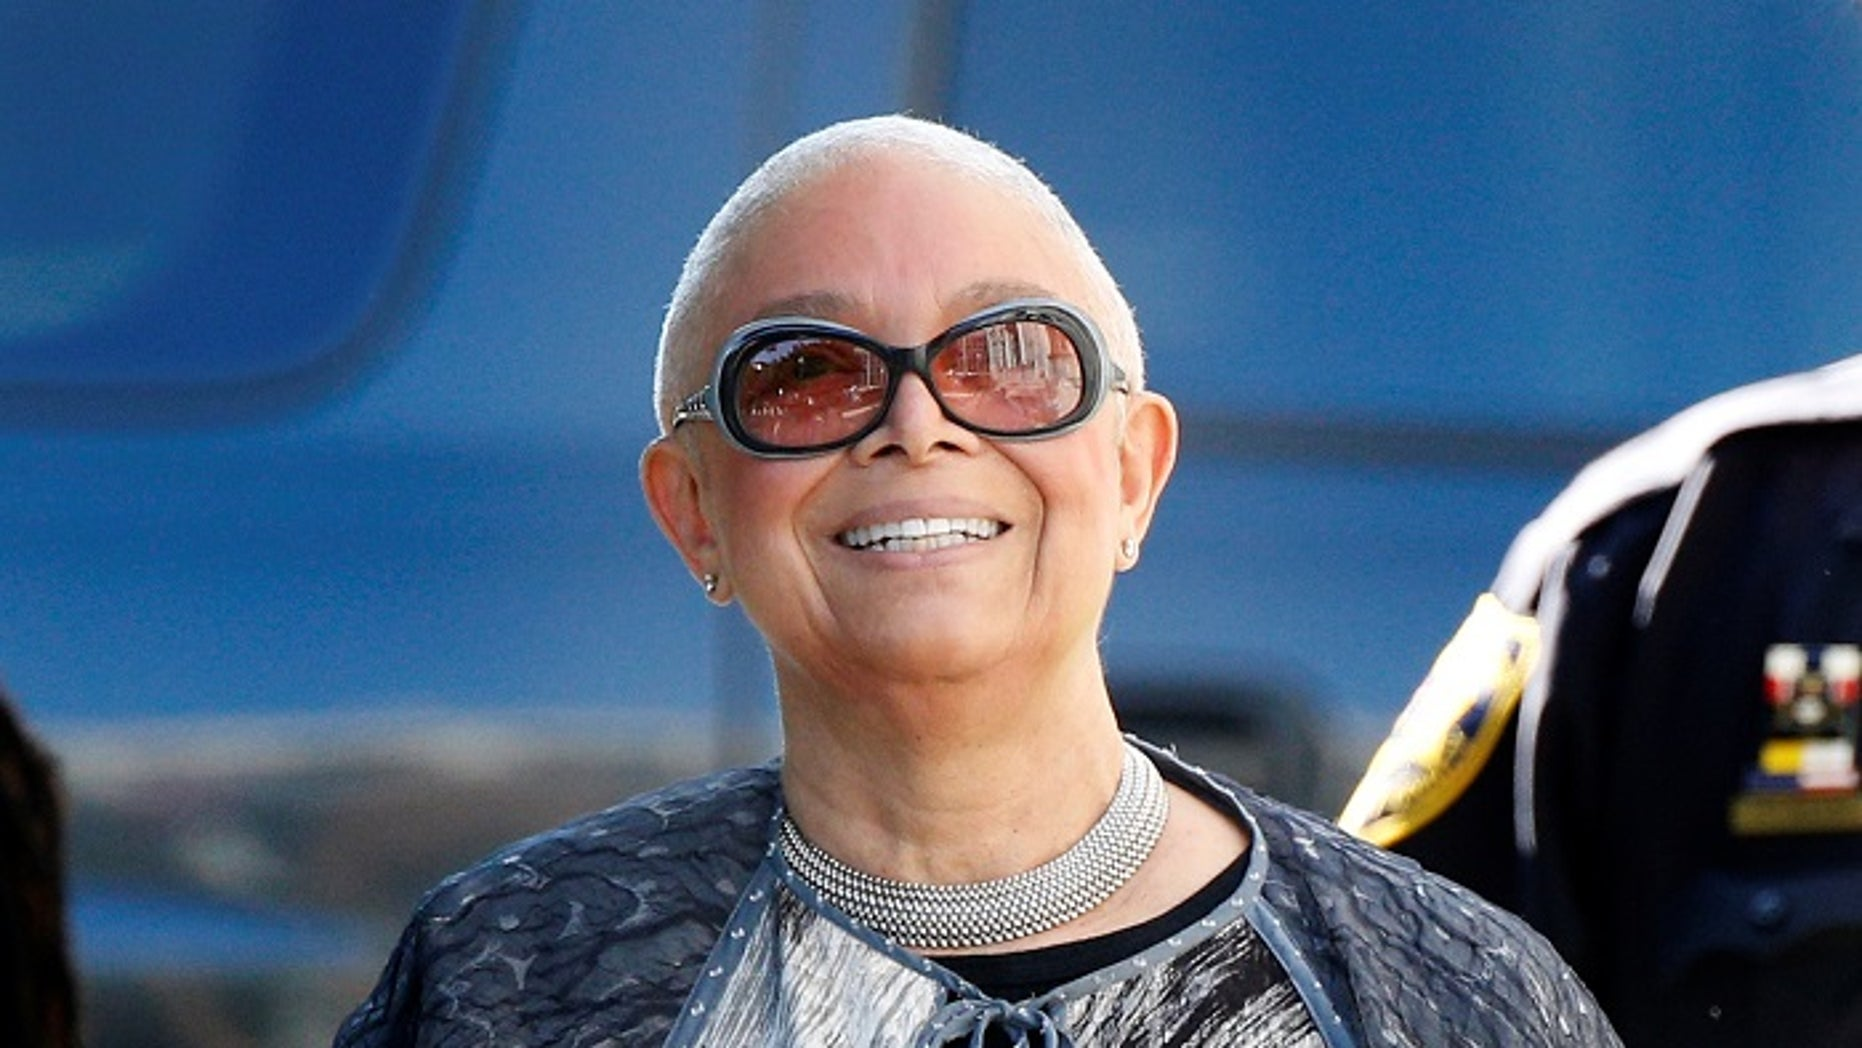 Camille Cosby has released a statement a week after her husband, Bill Cosby, was found guilty of drugging and assaulting women.